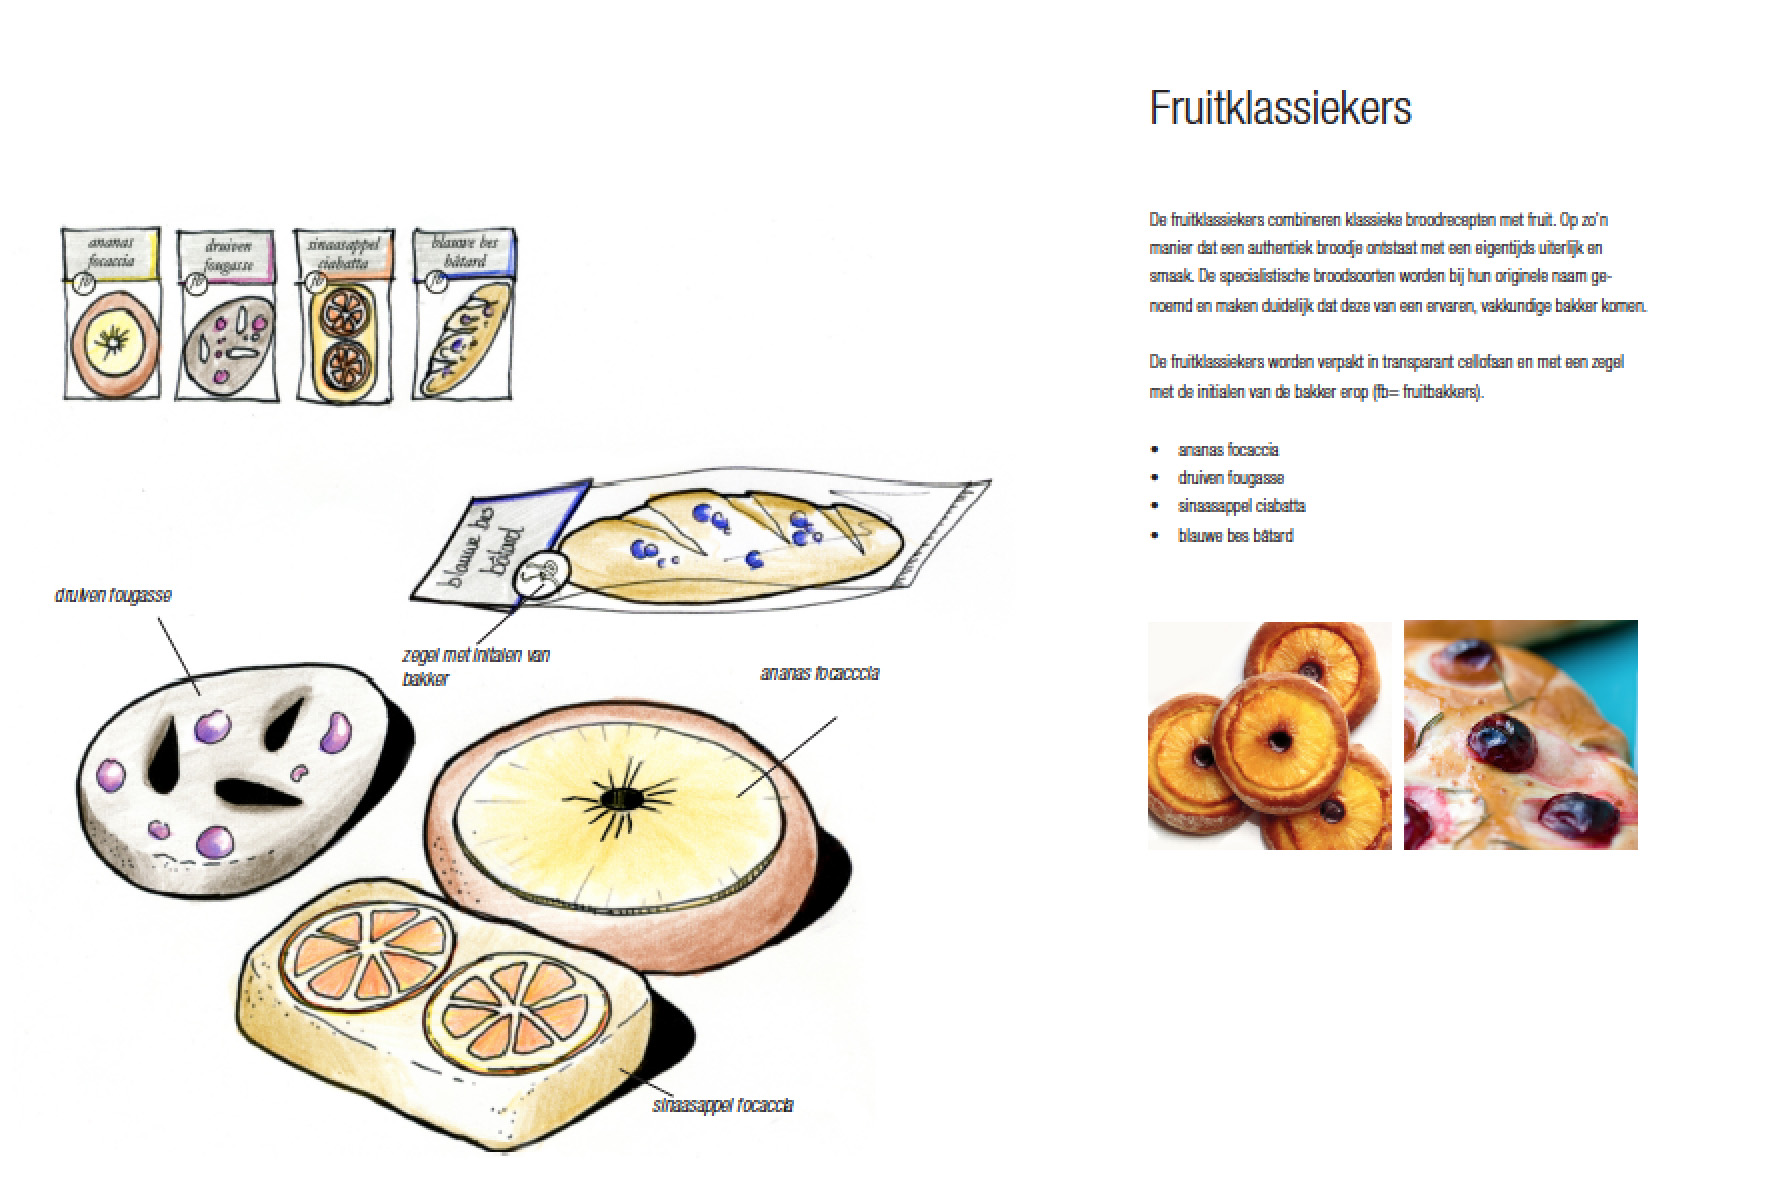 food-design-fruitbrood-klassiekers-fruitbakkers